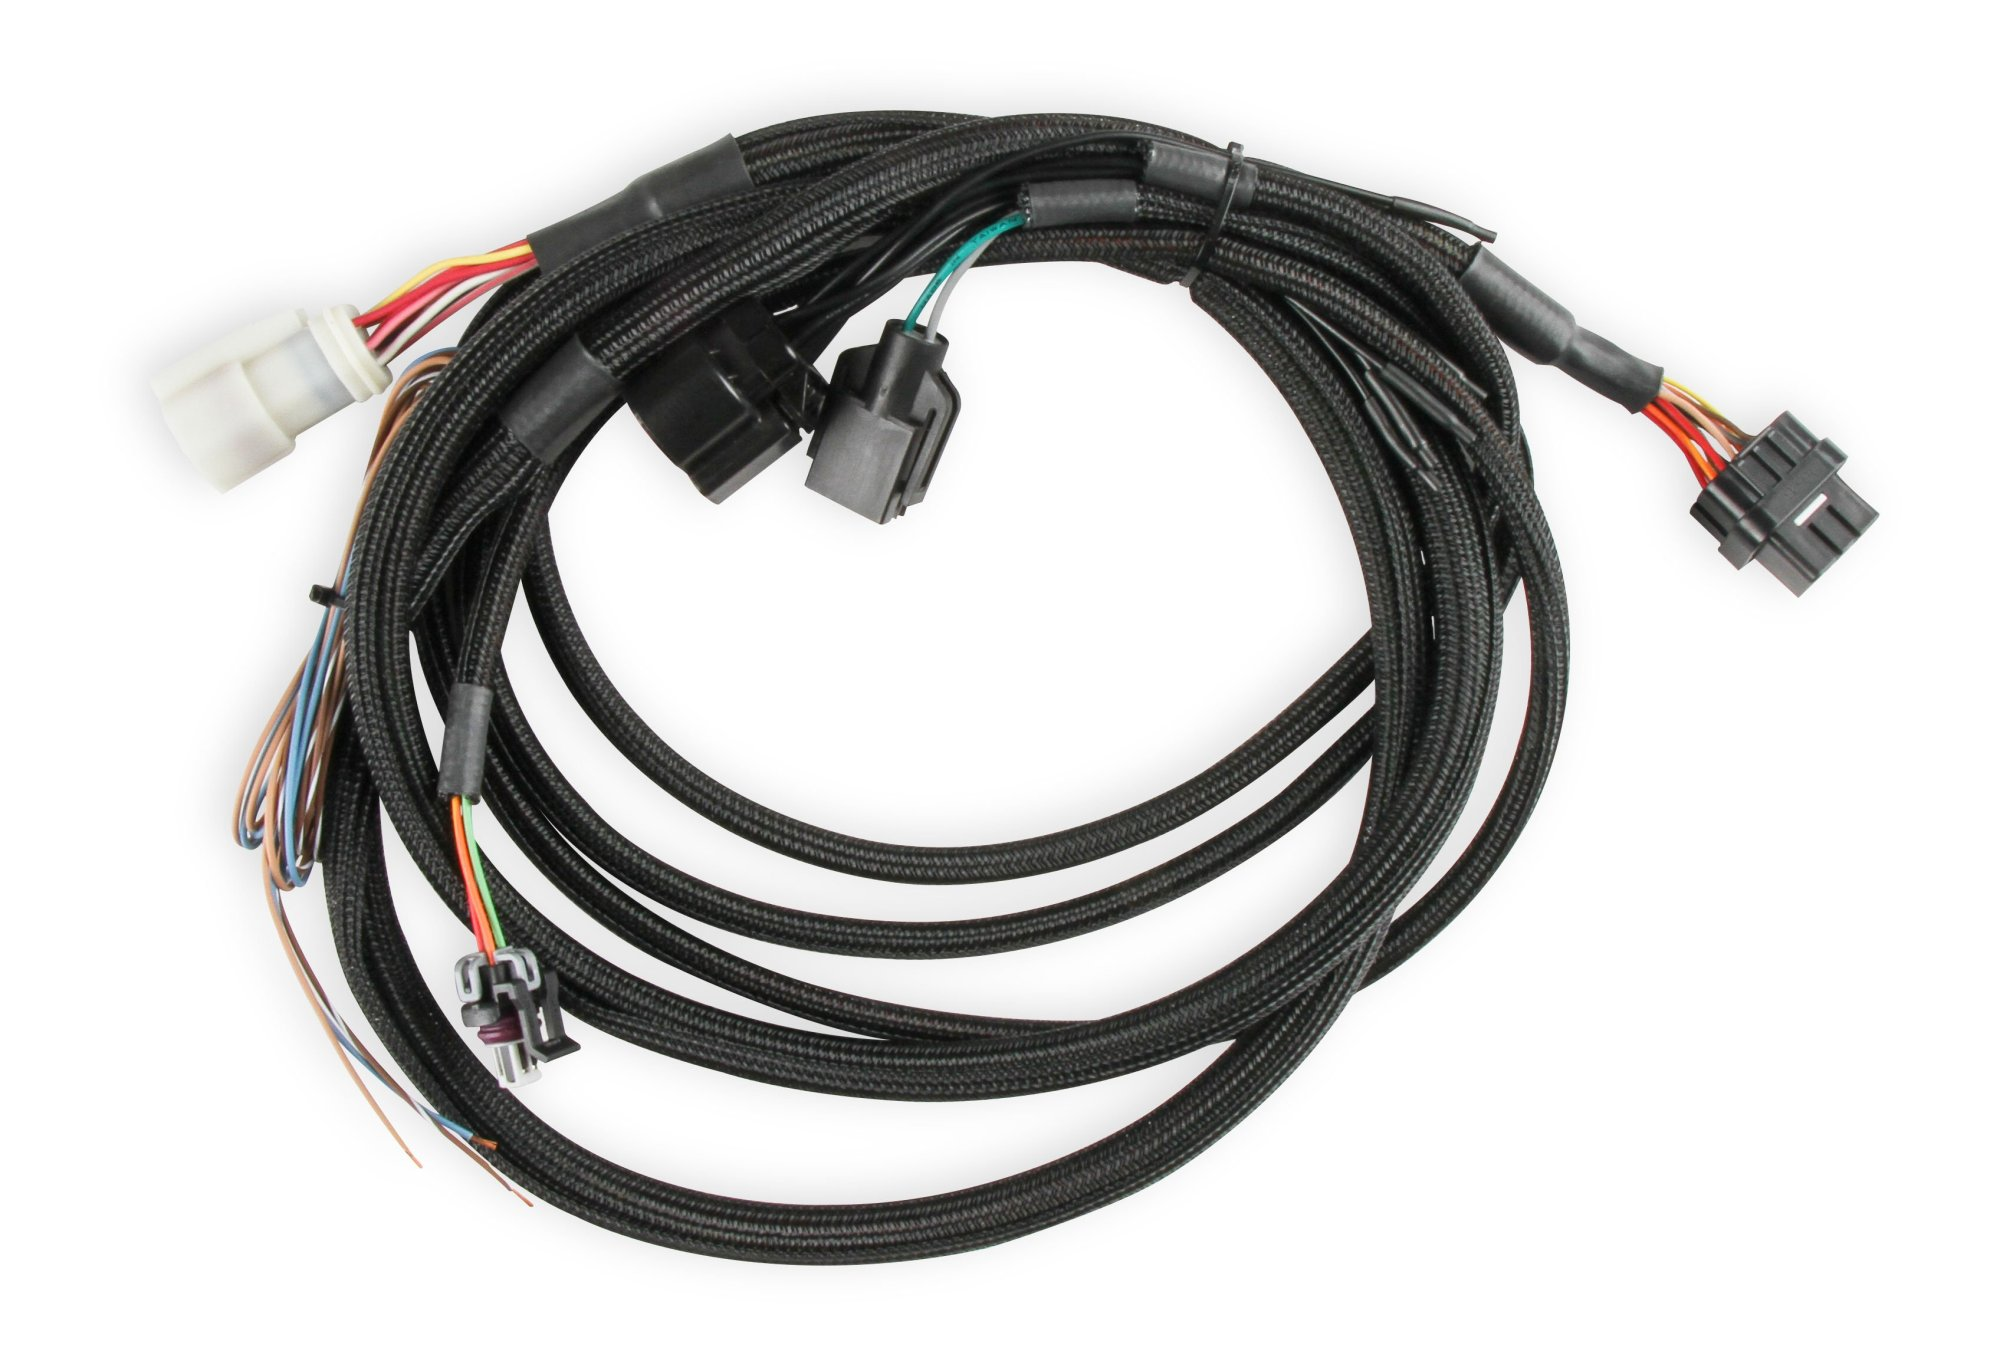 hight resolution of 558 471 1992 1997 ford aode 4r70w transmission control harness image